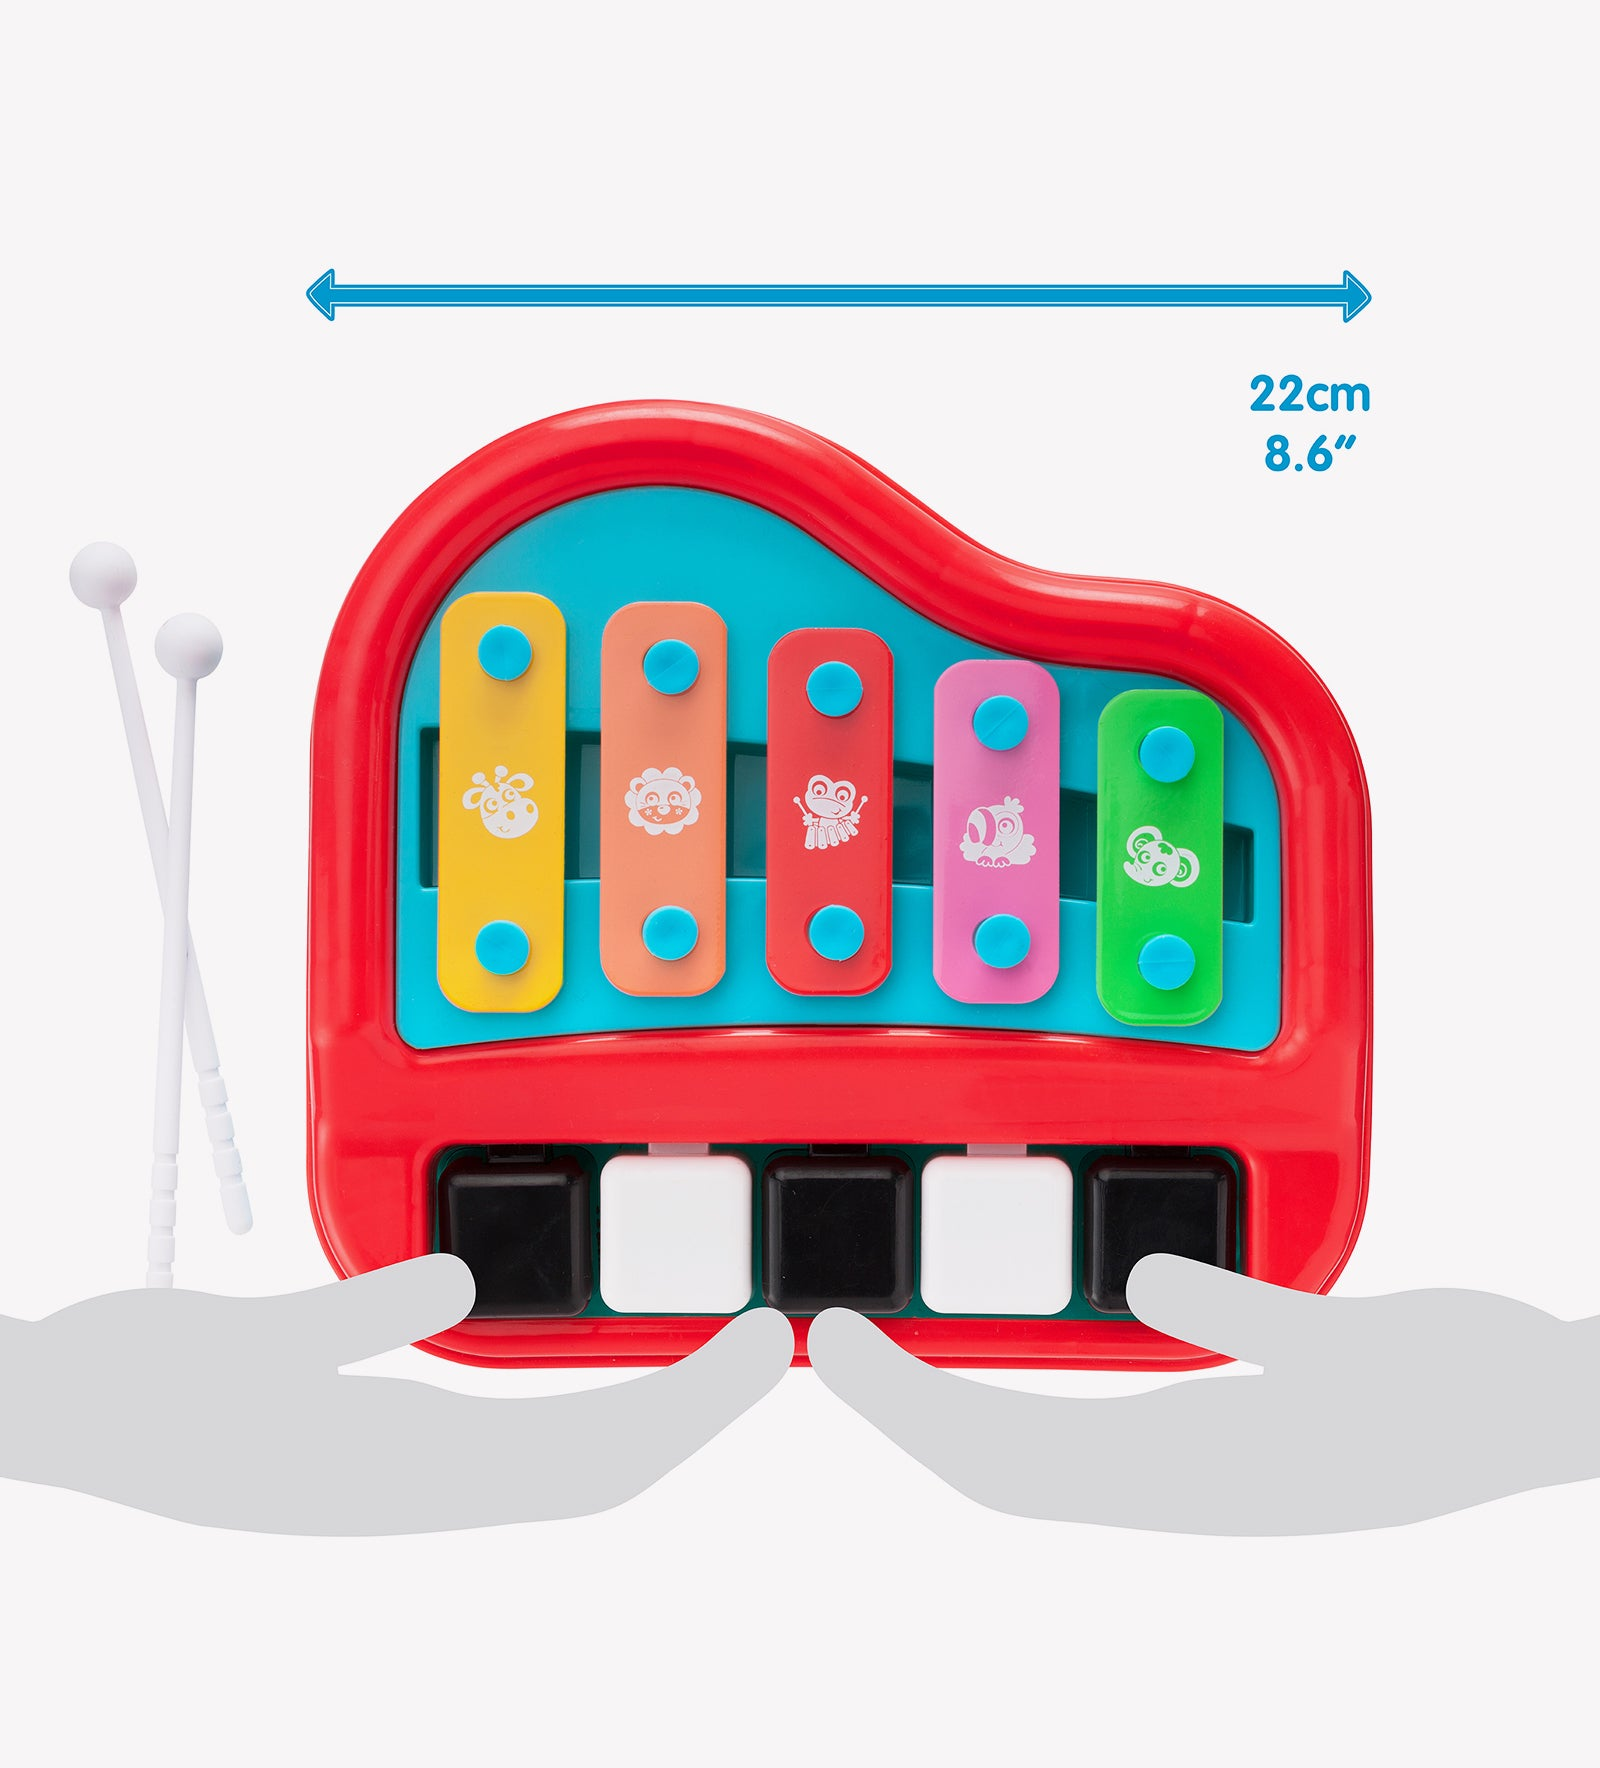 Playgro Piano and Xylophone baby toy size in comparison to human palm